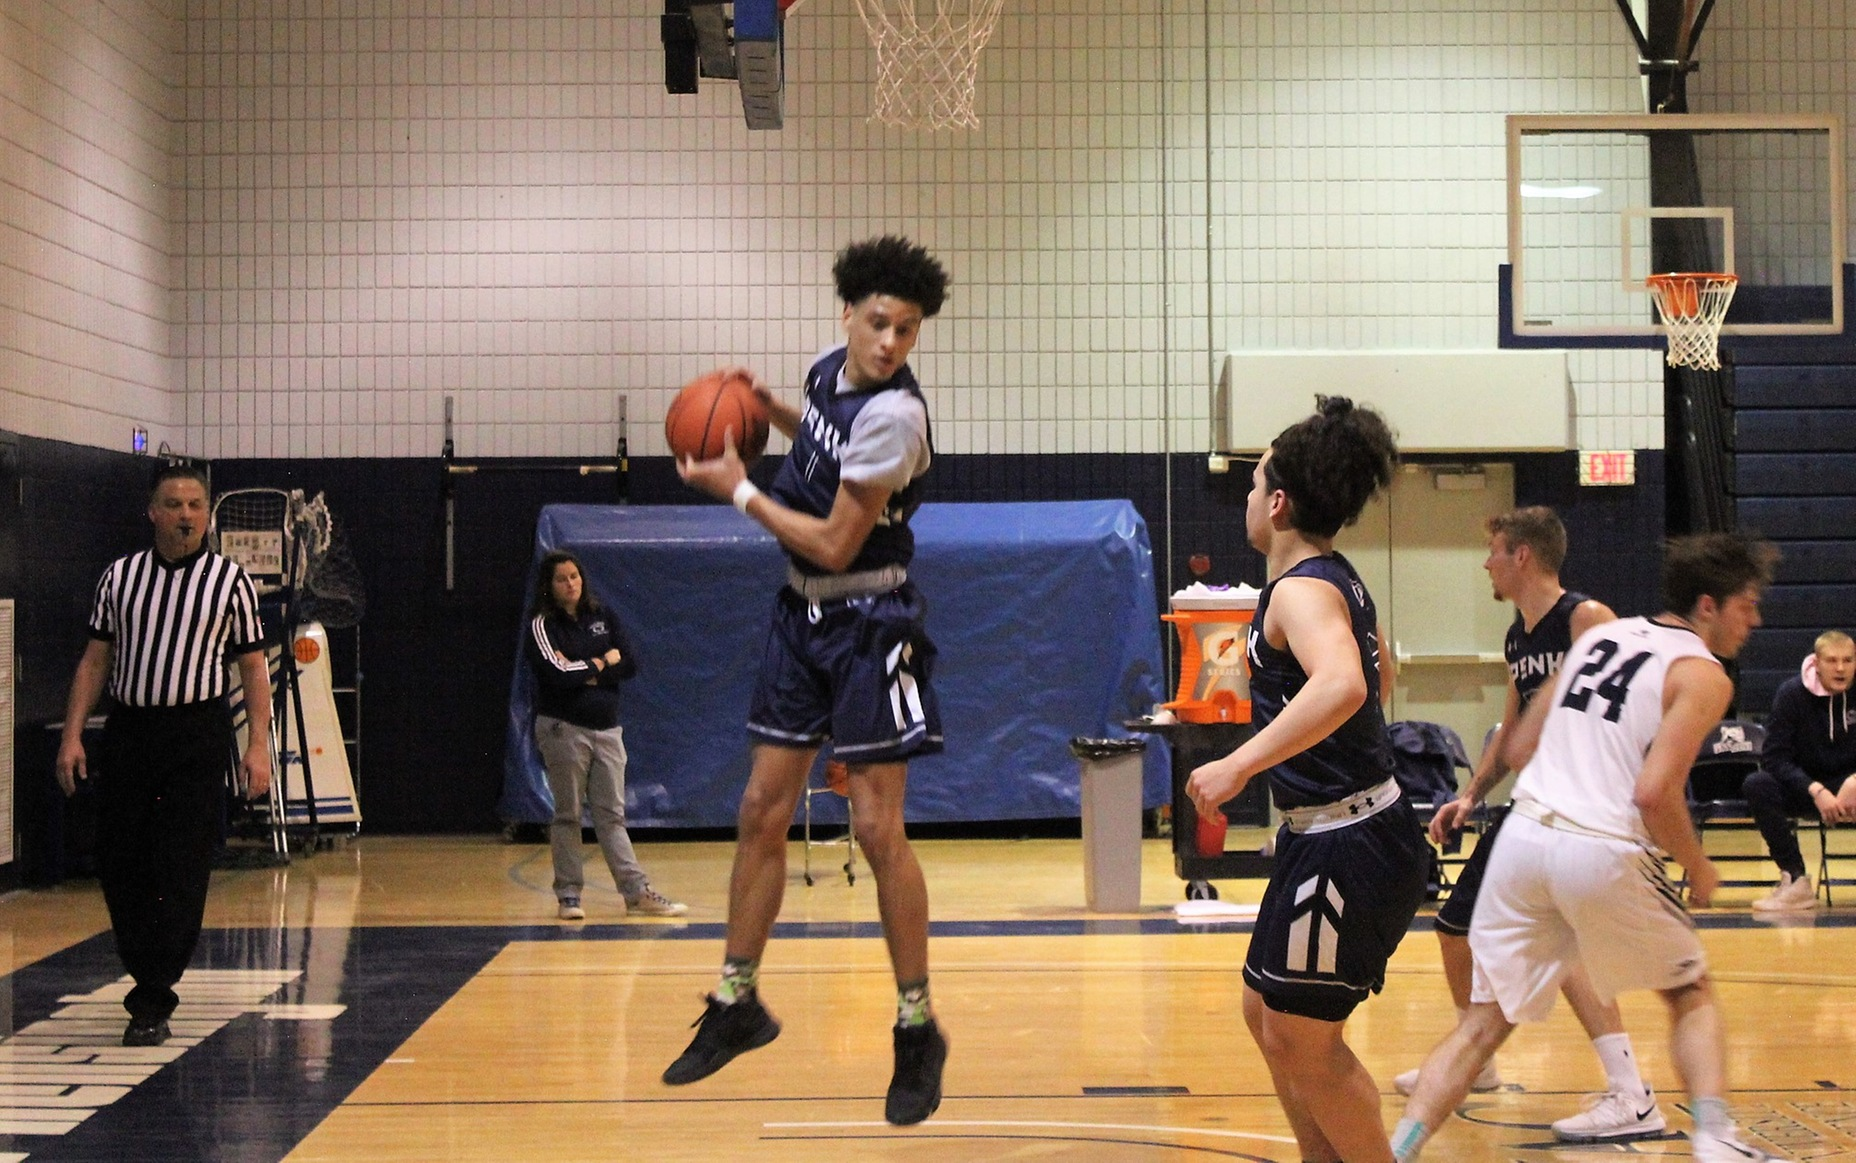 New Kensington Unable to Catch Up to Hazleton in Men's Basketball